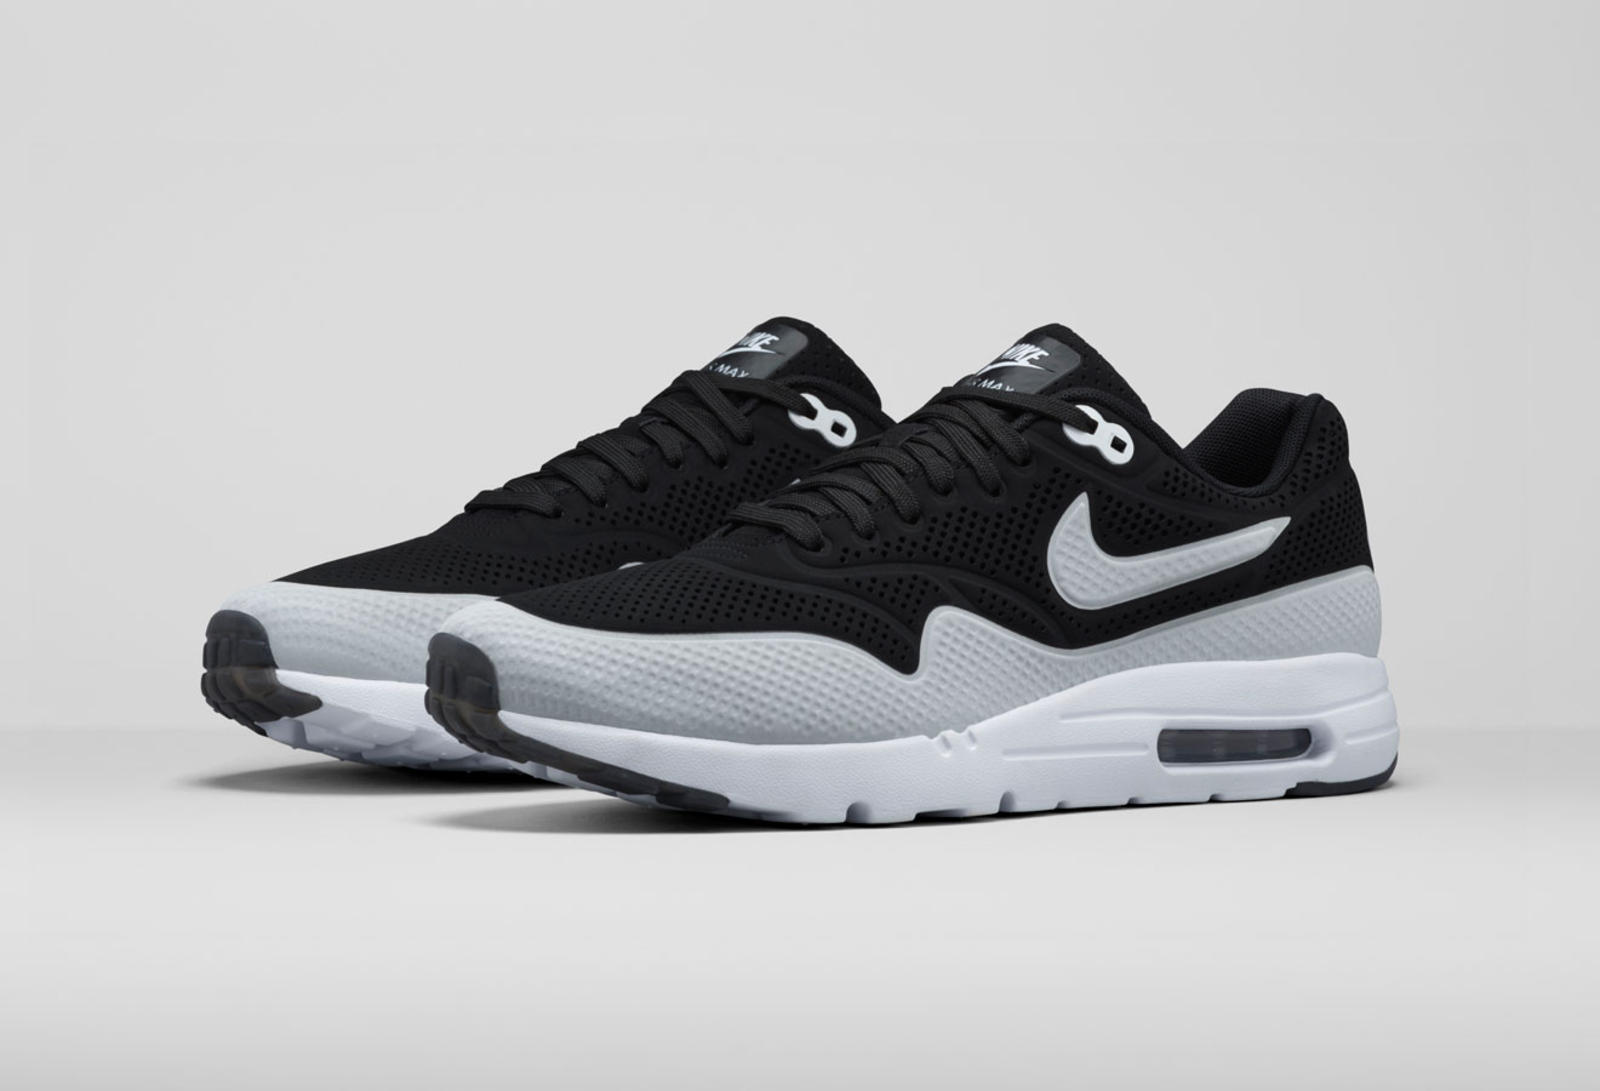 air max 1 ultra moire tumblr. Black Bedroom Furniture Sets. Home Design Ideas